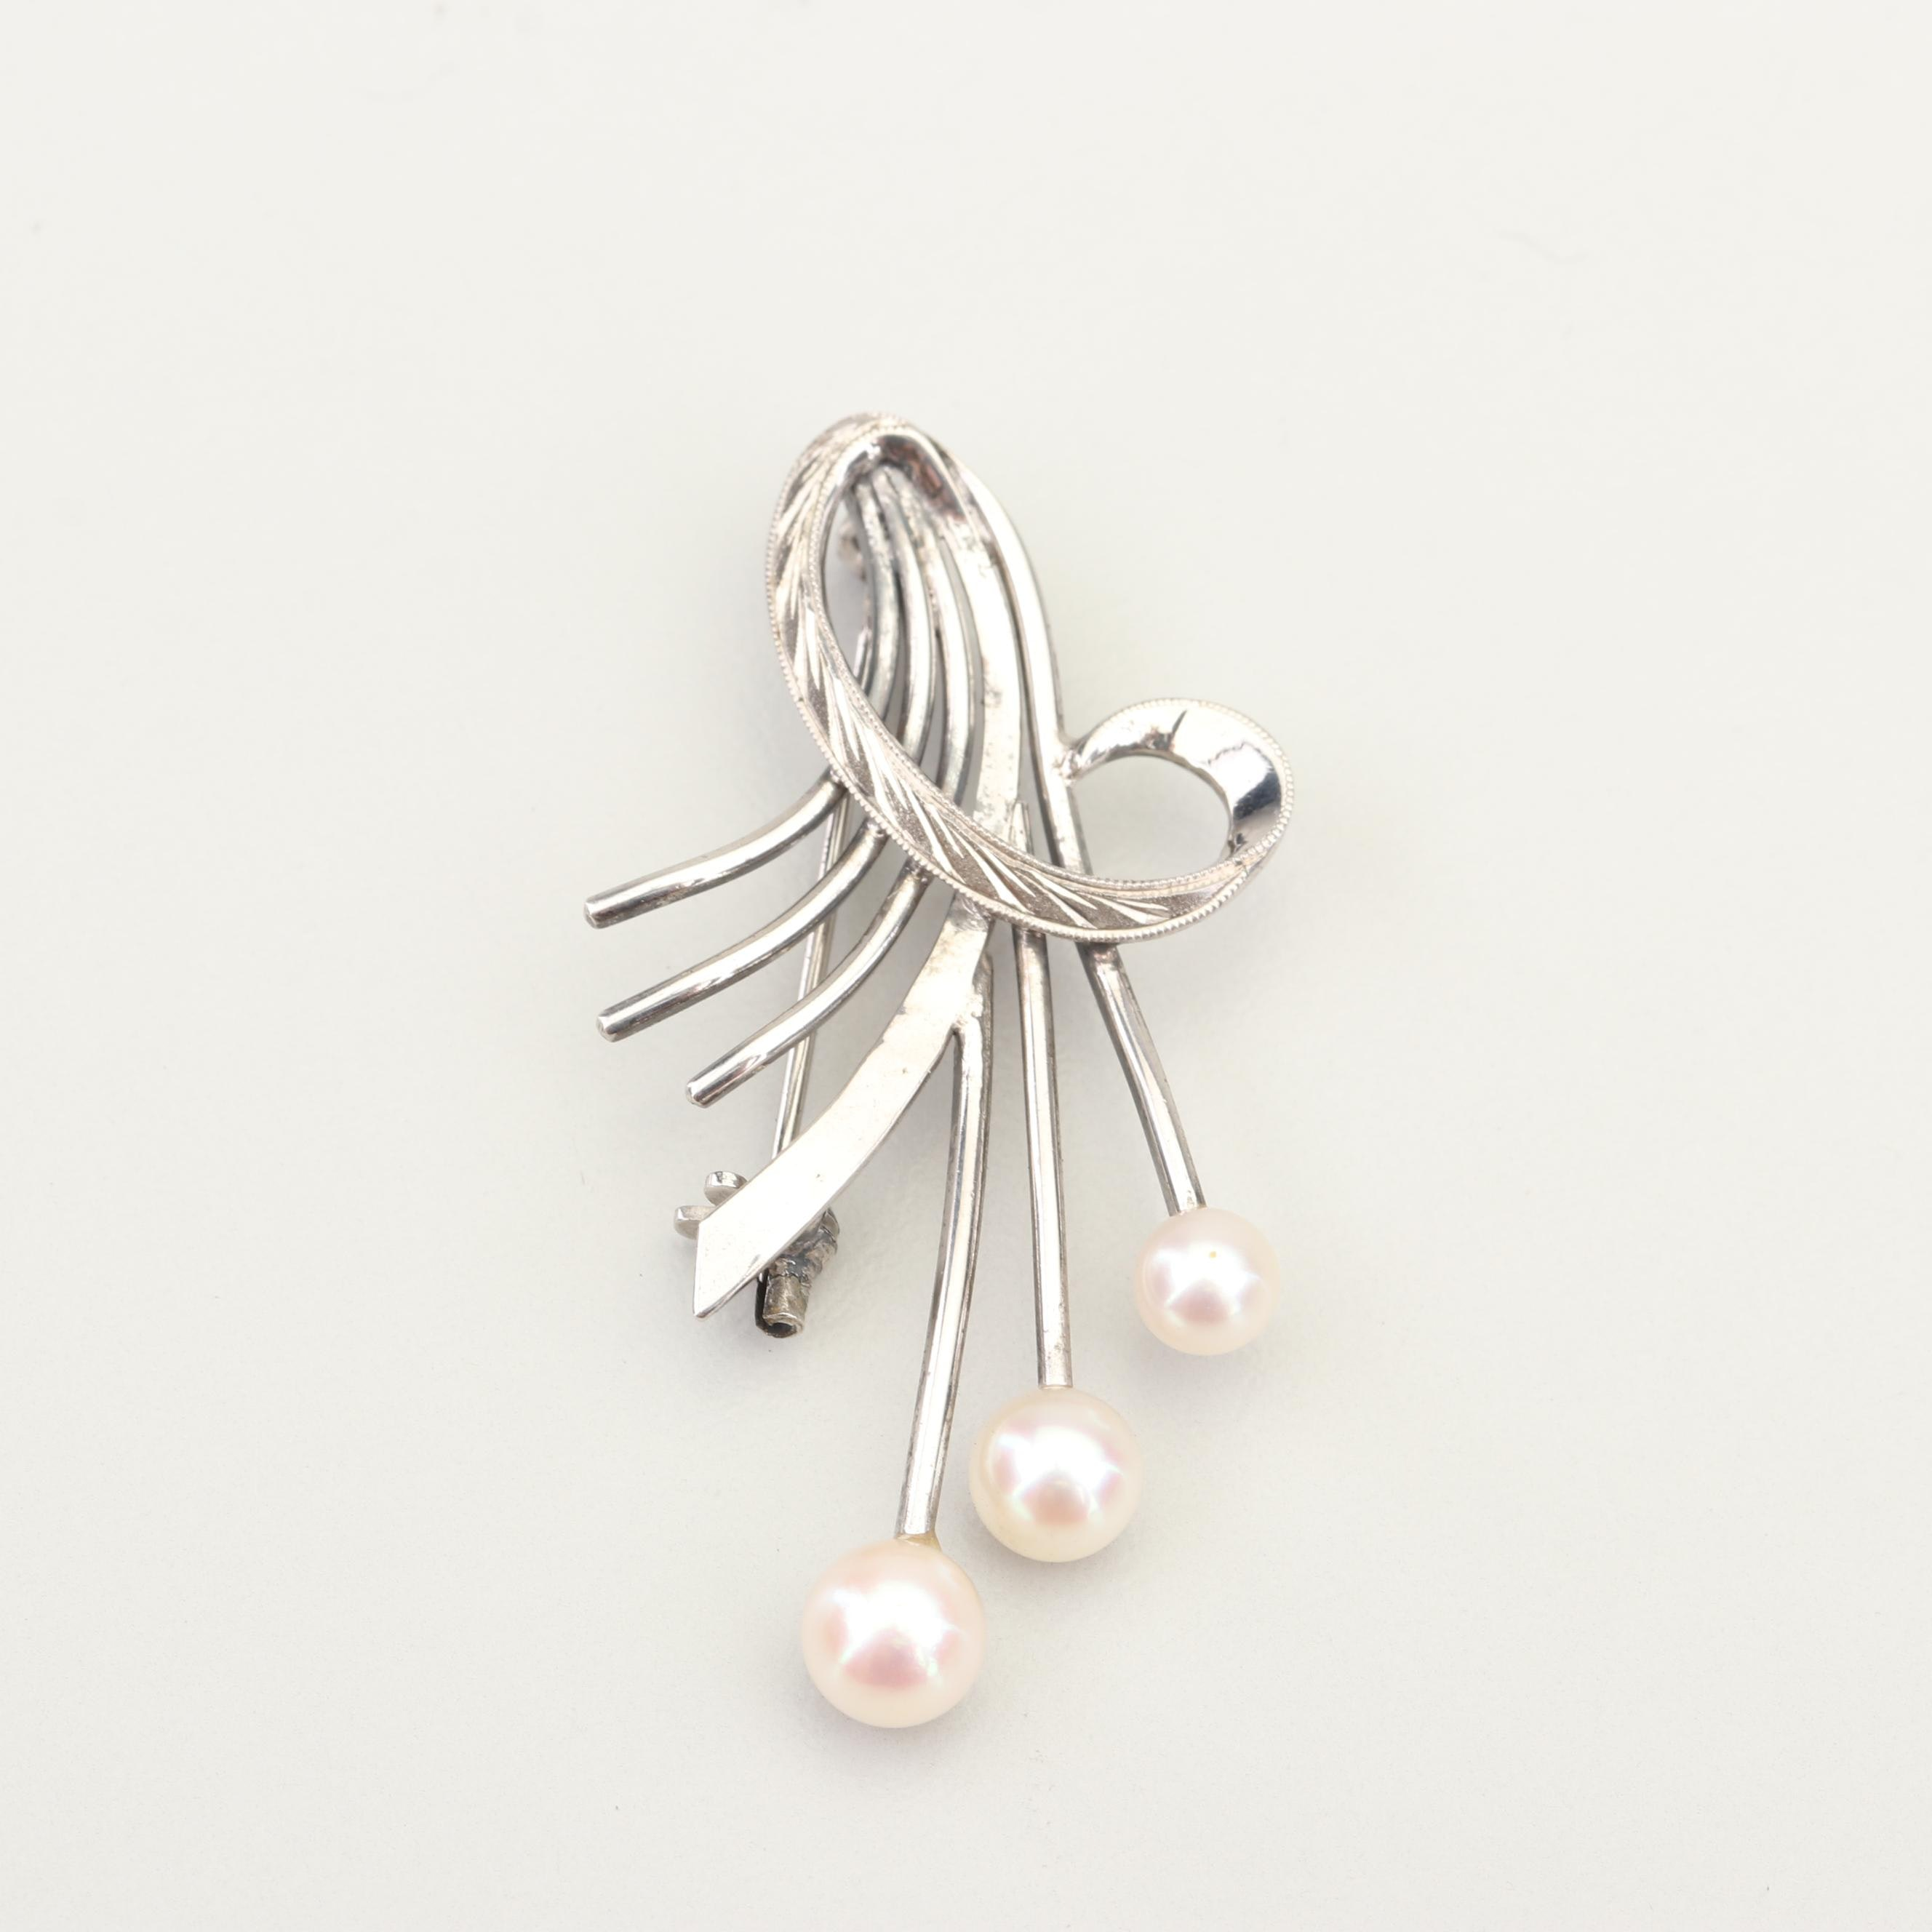 Mikimoto Sterling Silver Cultured Freshwater Pearl Brooch